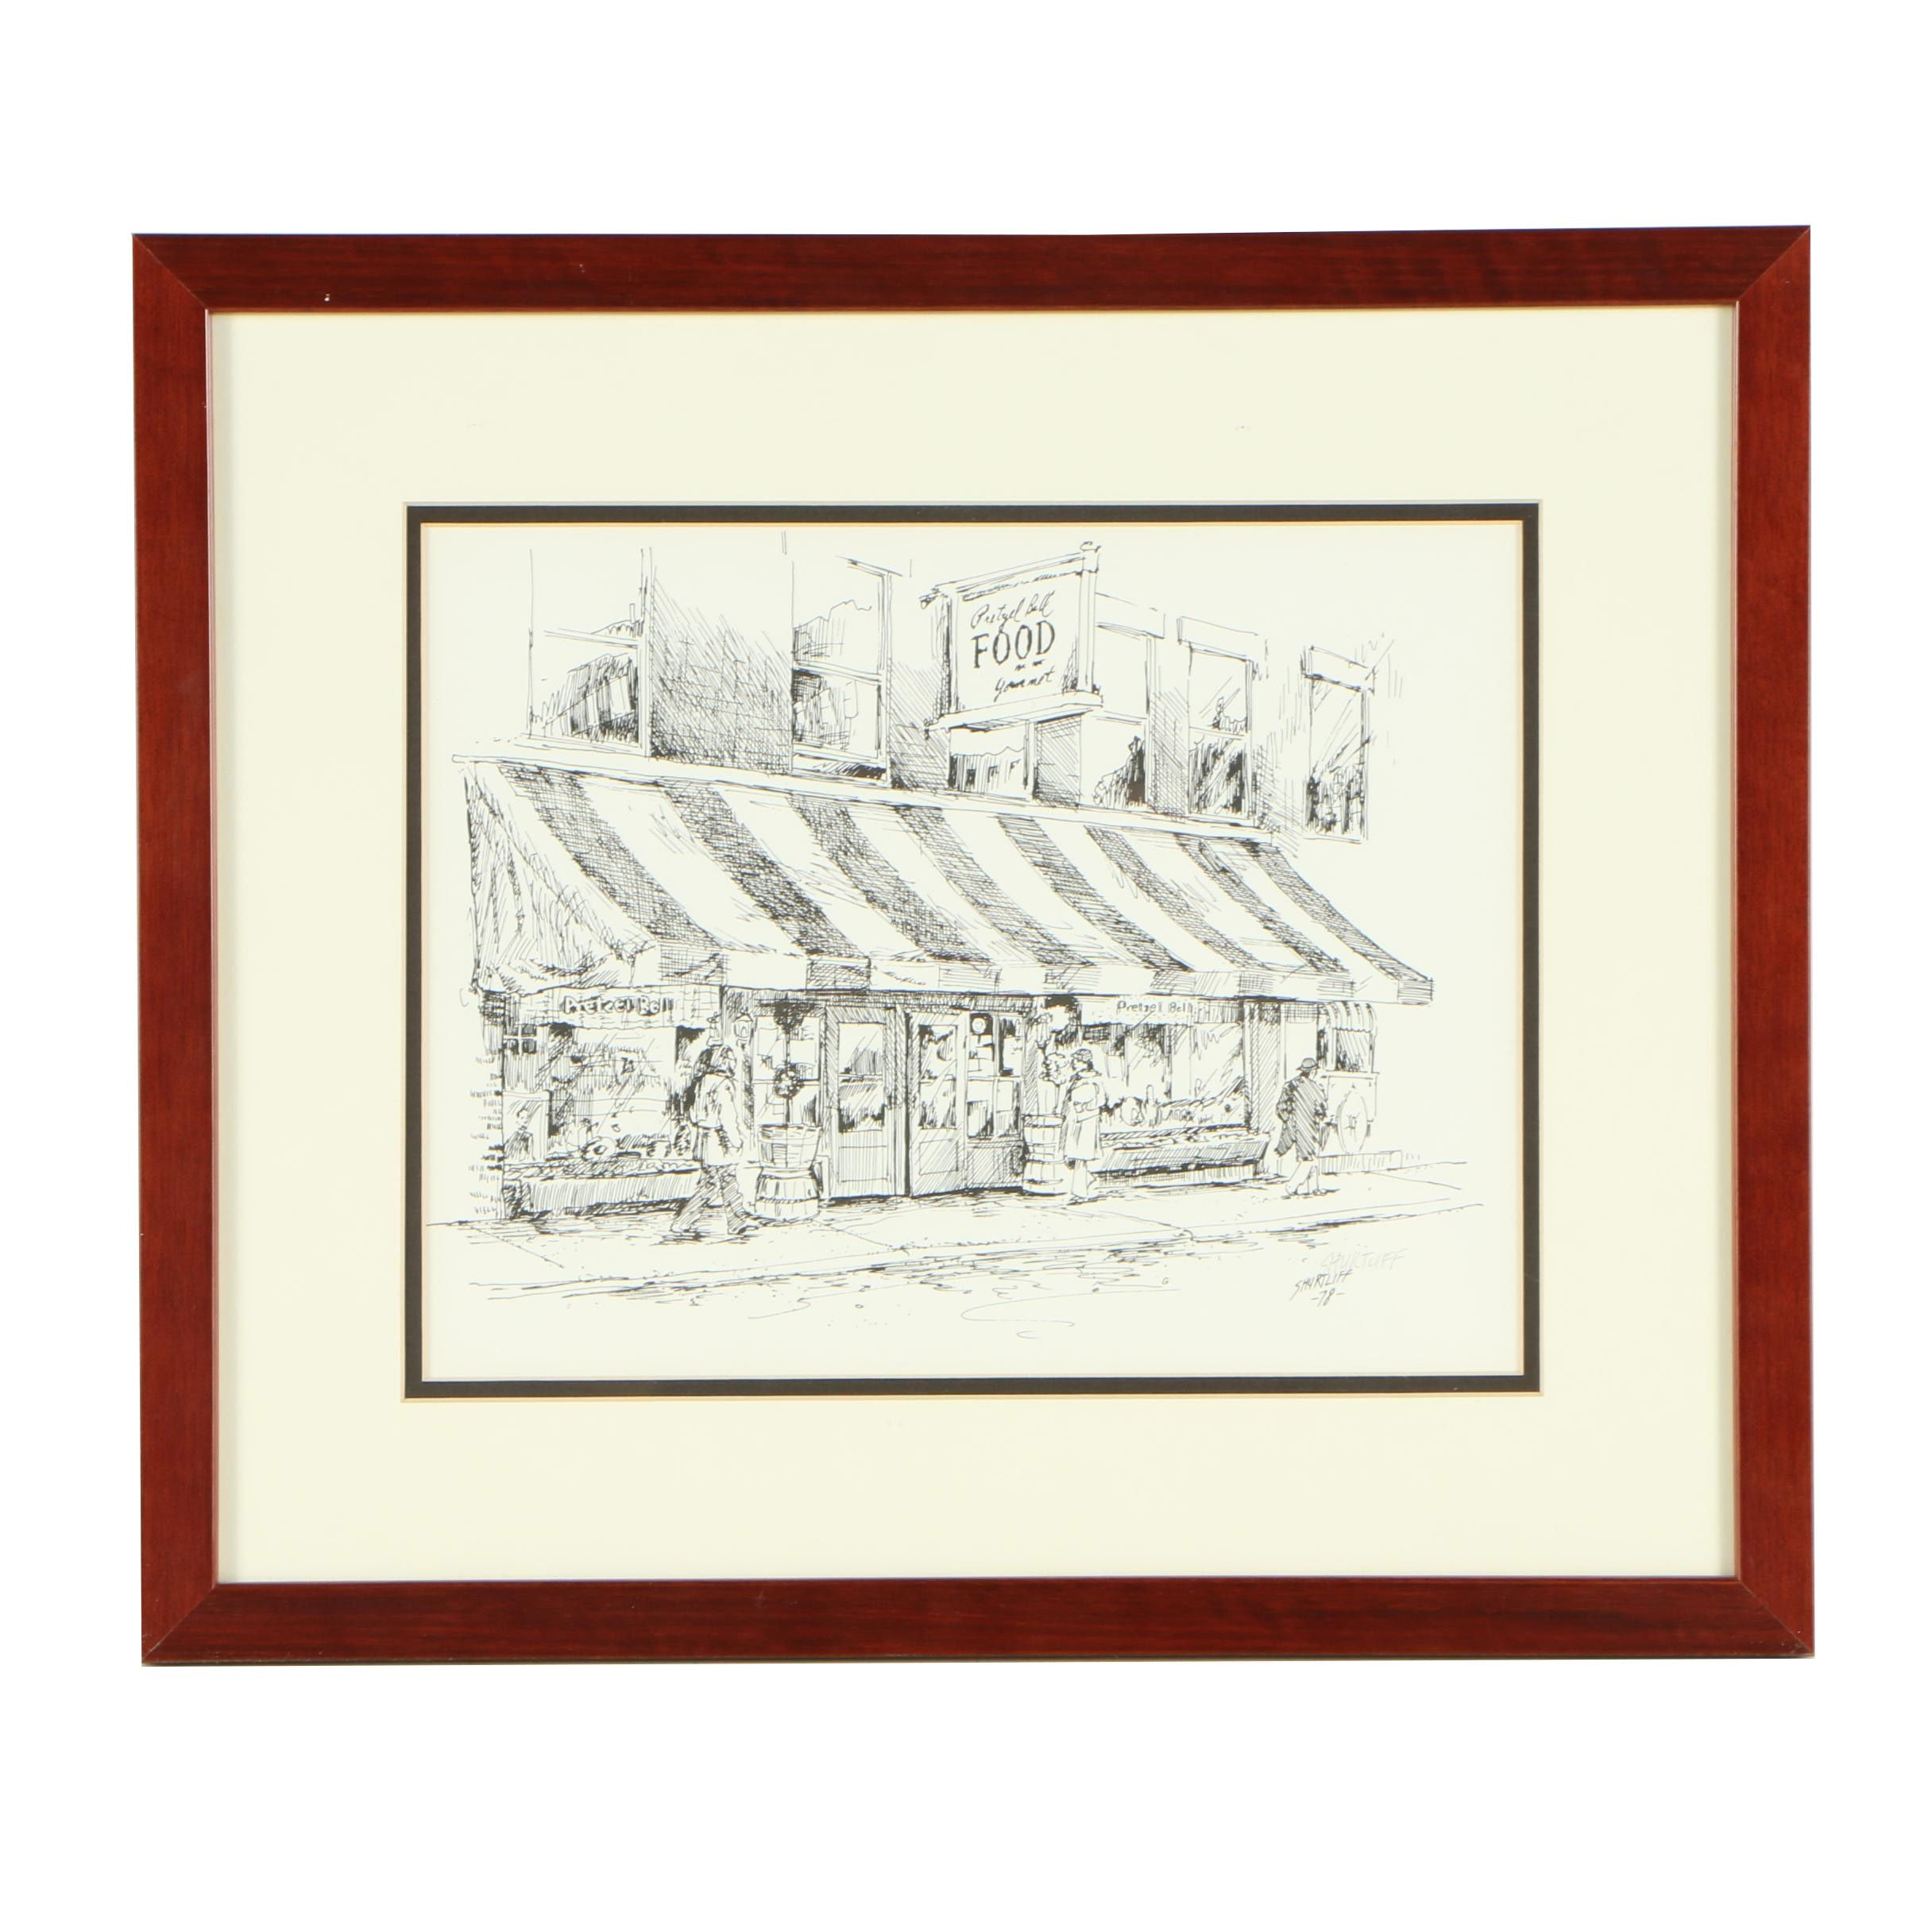 Bill Shurtliff Lithograph Print After Drawing of Street Scene